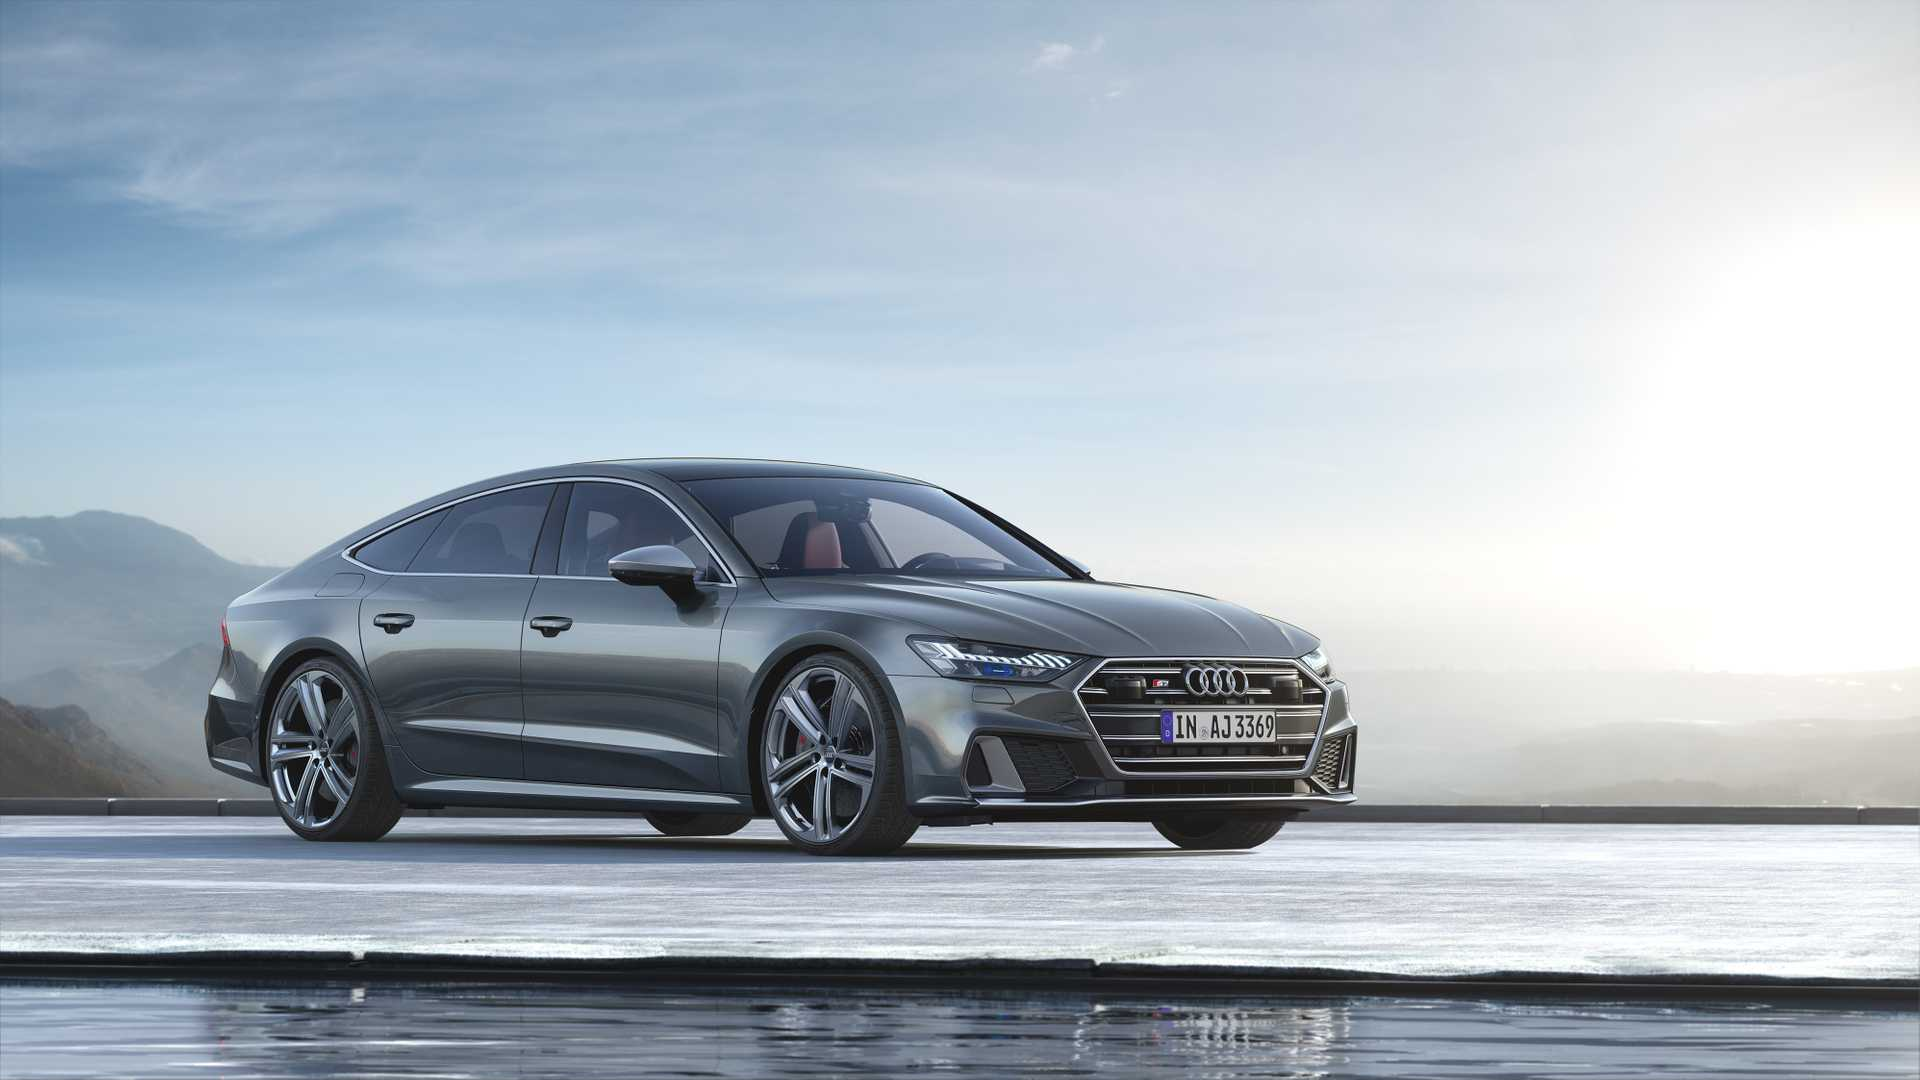 2019 Audi S7 Sportback TDI (Color: Daytona Grey) Front Three-Quarter Wallpapers (6)